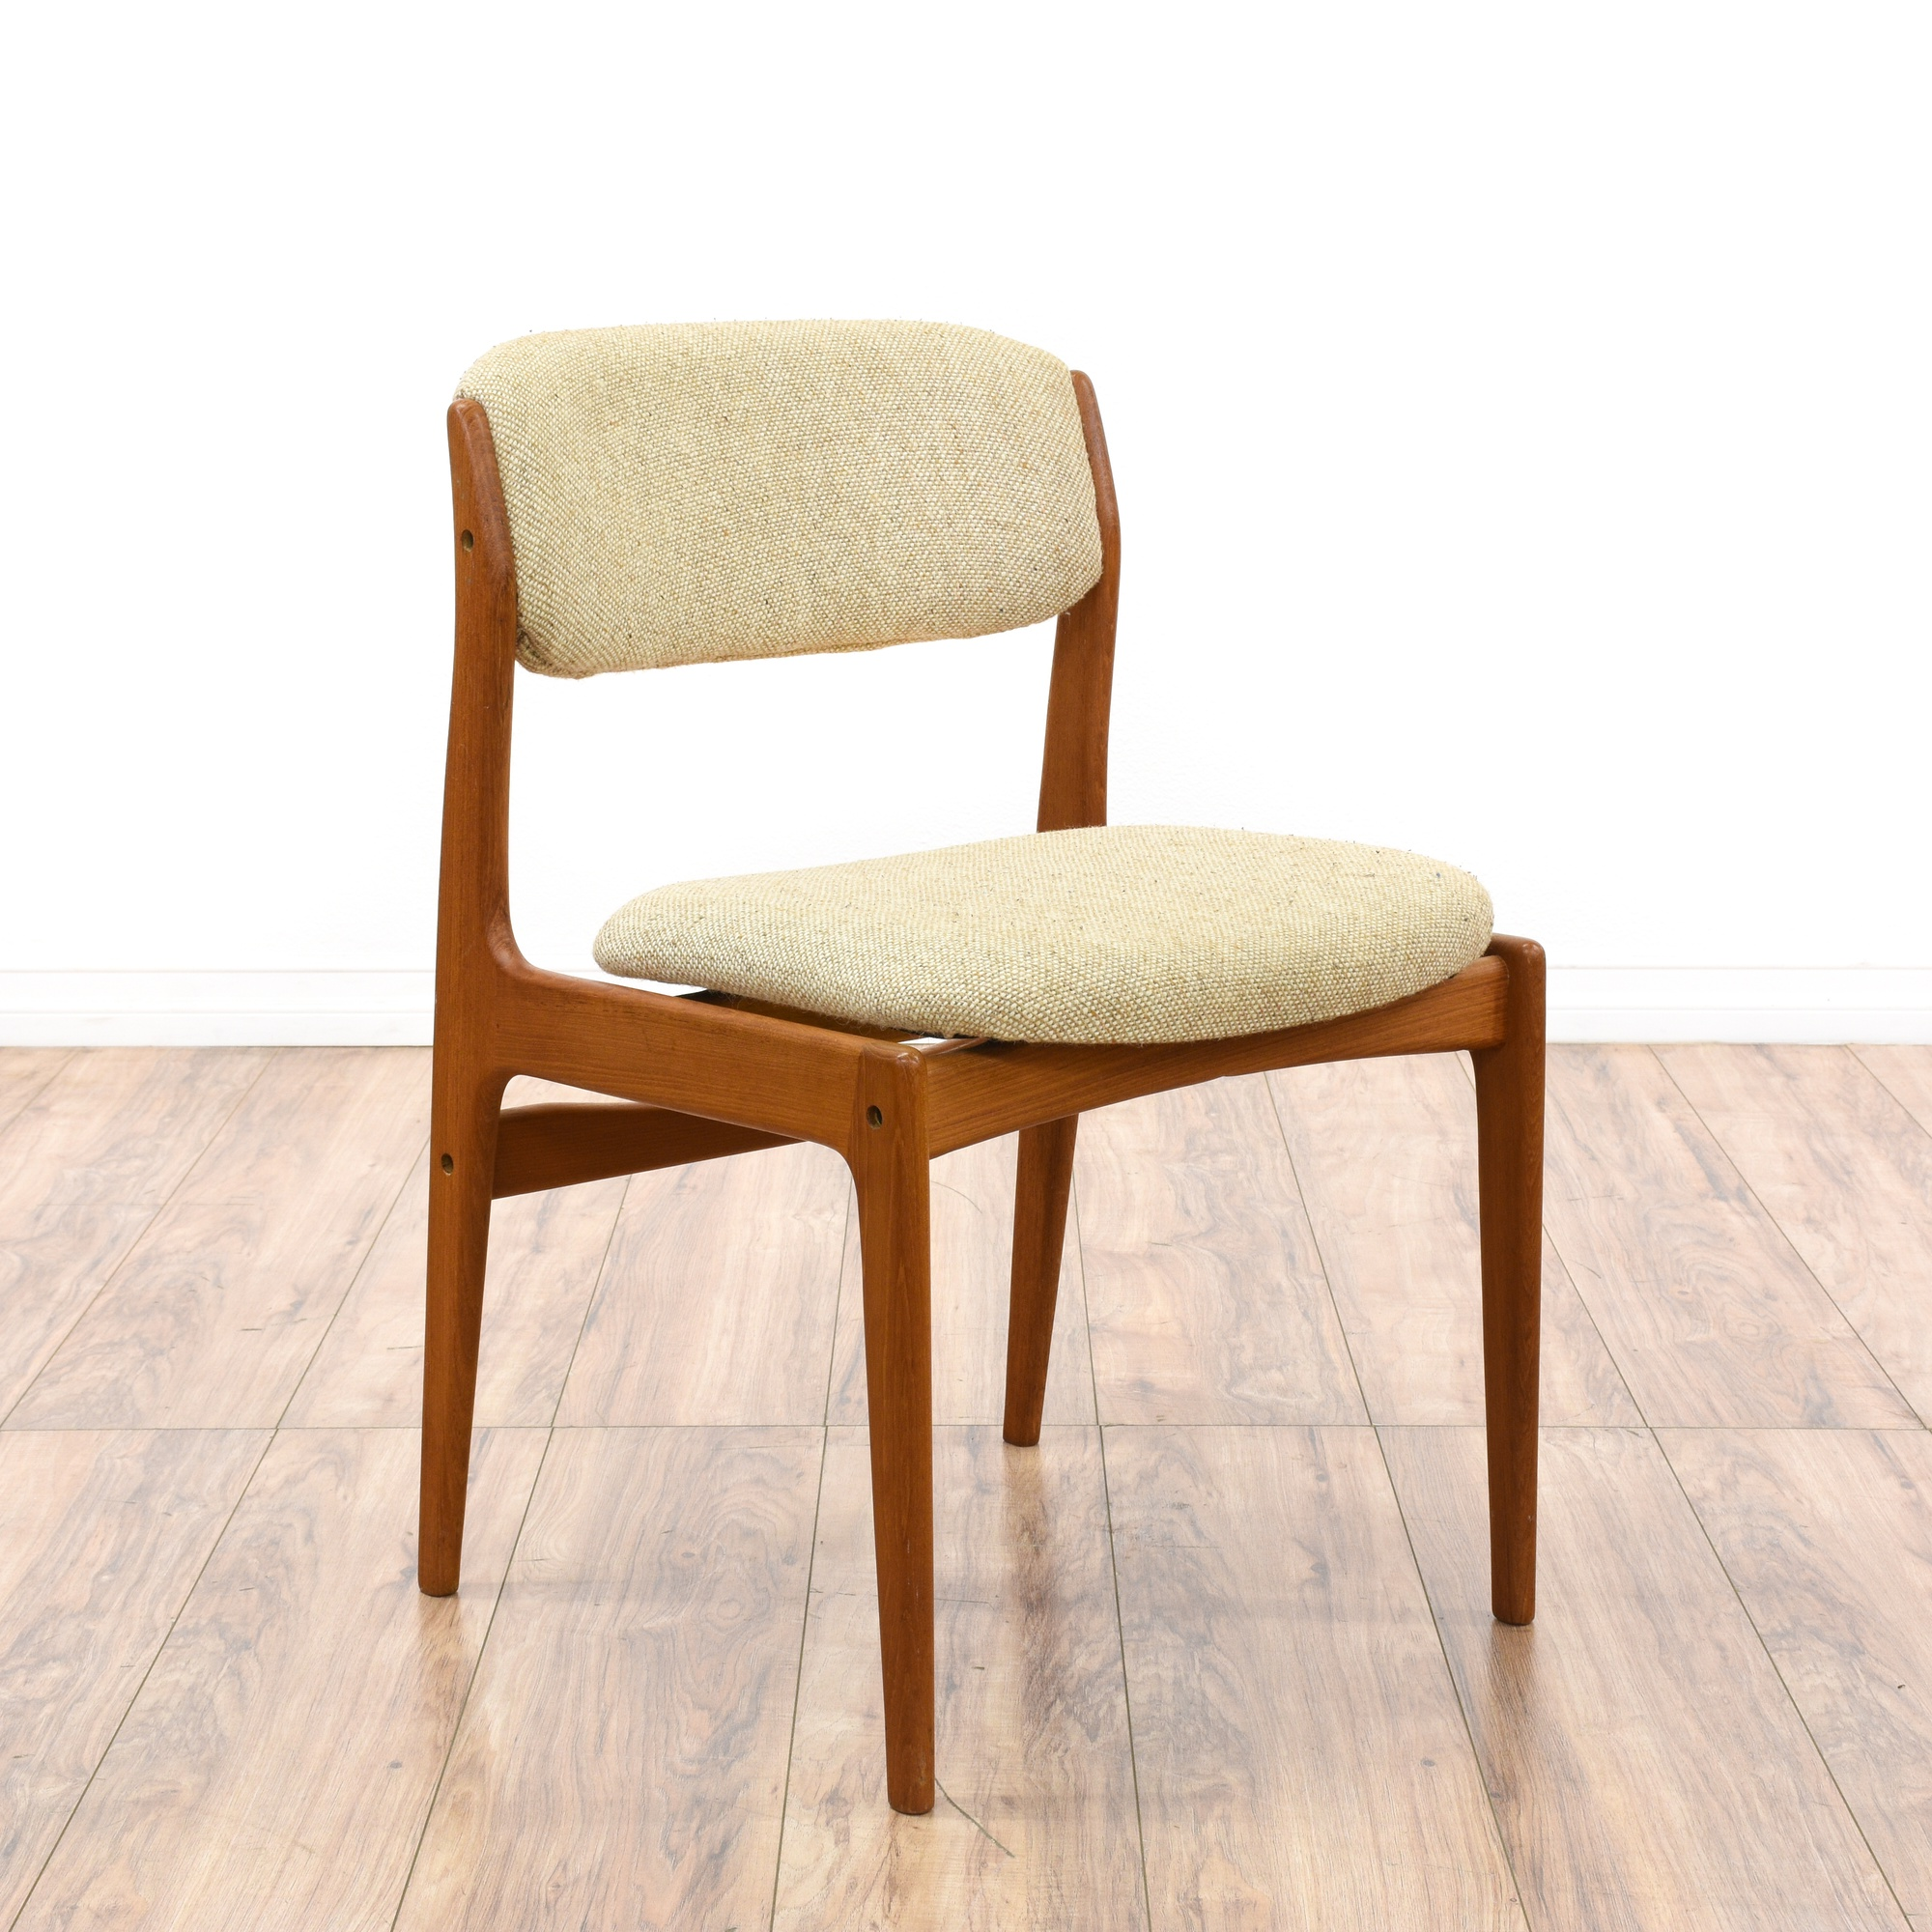 pair of quot benny linden quot danish modern dining chairs 14964 | convert w 2000 h 2000 fit crop rotate exif